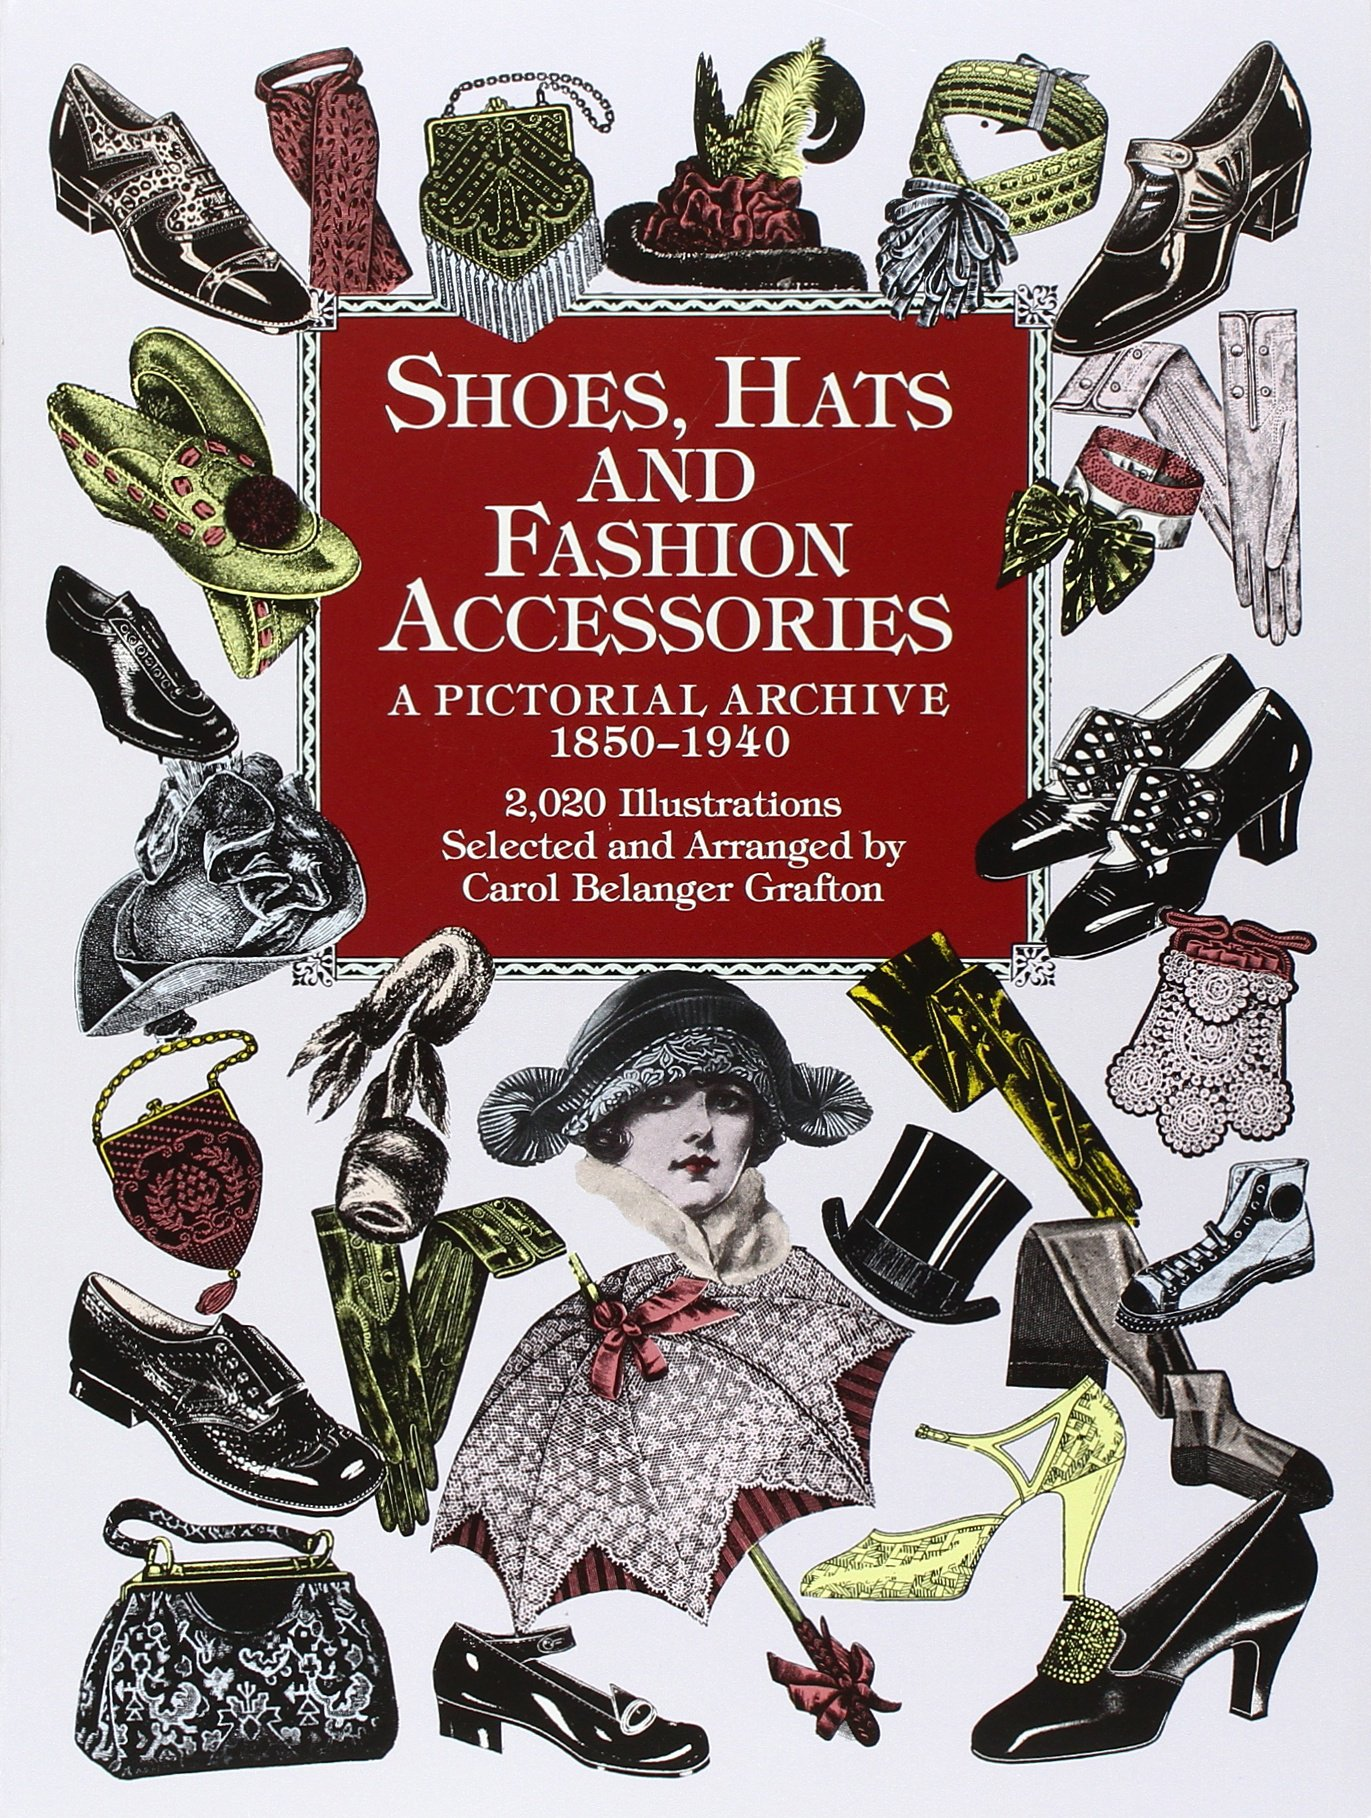 Shoes, Hats and Fashion Accessories: A Pictorial Archive, 1850-1940 (Dover Pictorial Archives) (Dover Pictorial Archive Series)